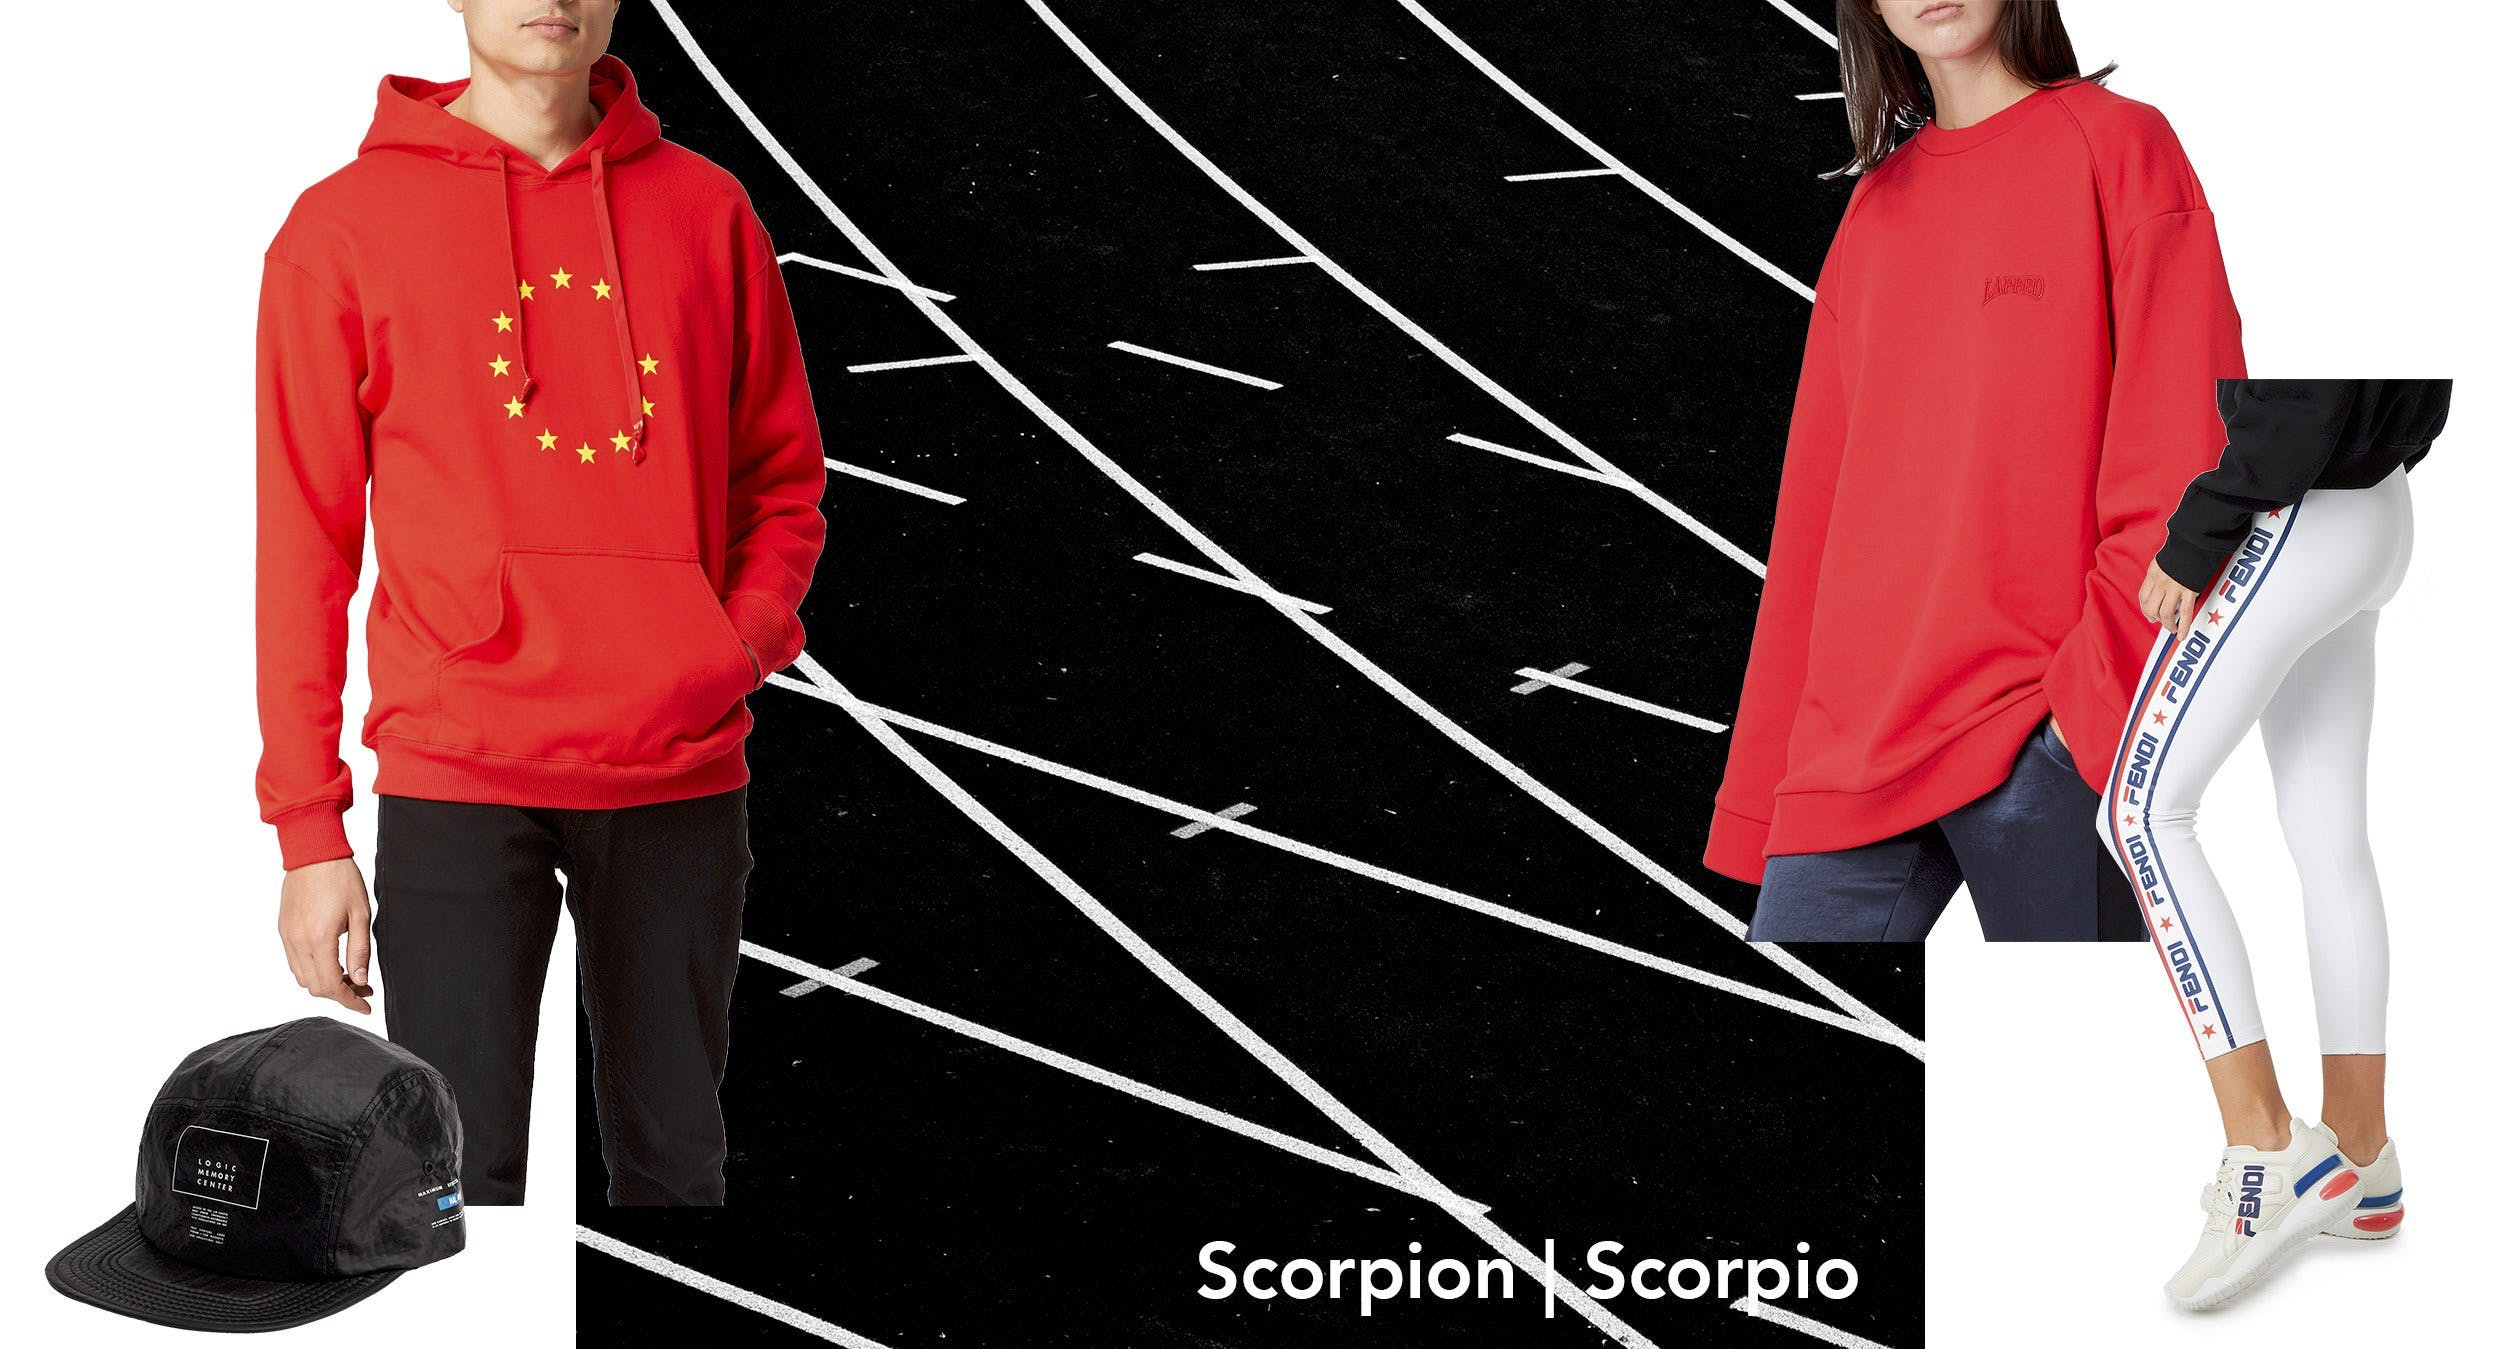 leclaireur-astrofashion-12-2018-scorpio